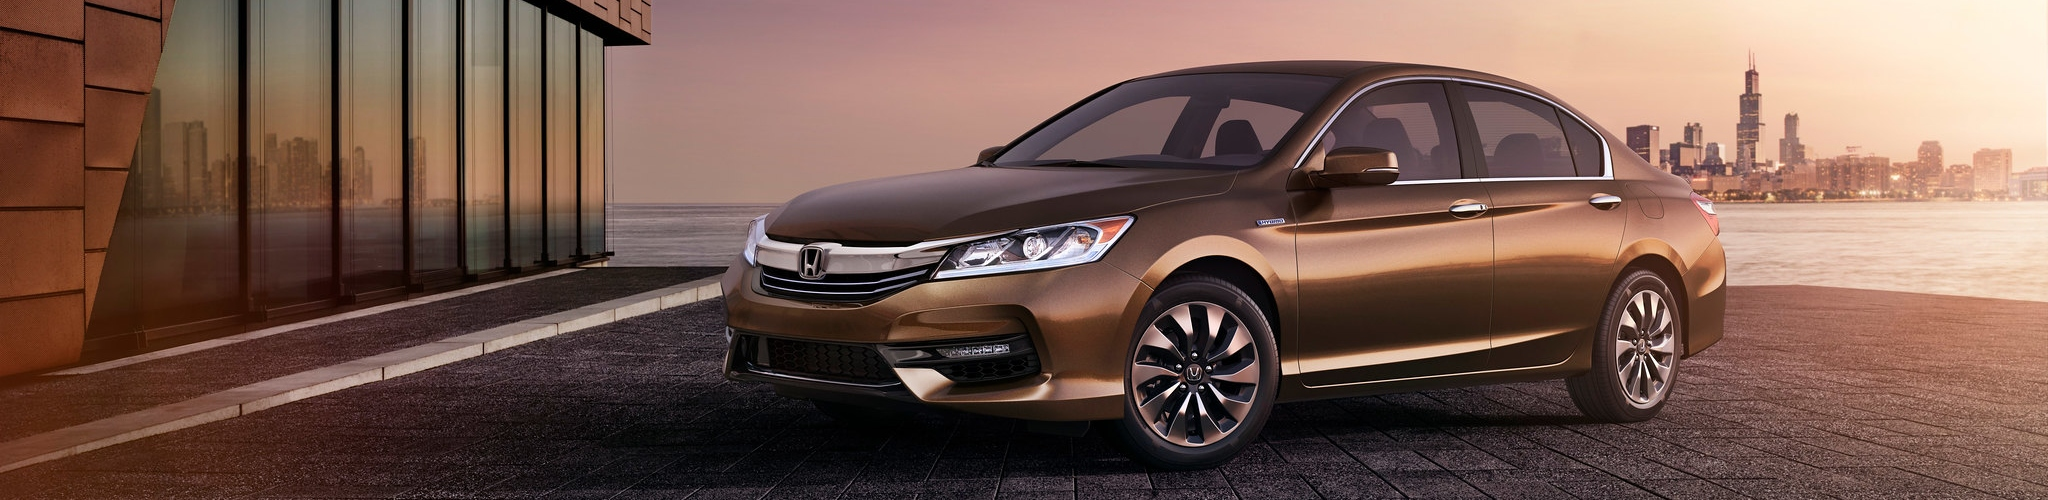 Used Honda Accord | Newport News, VA